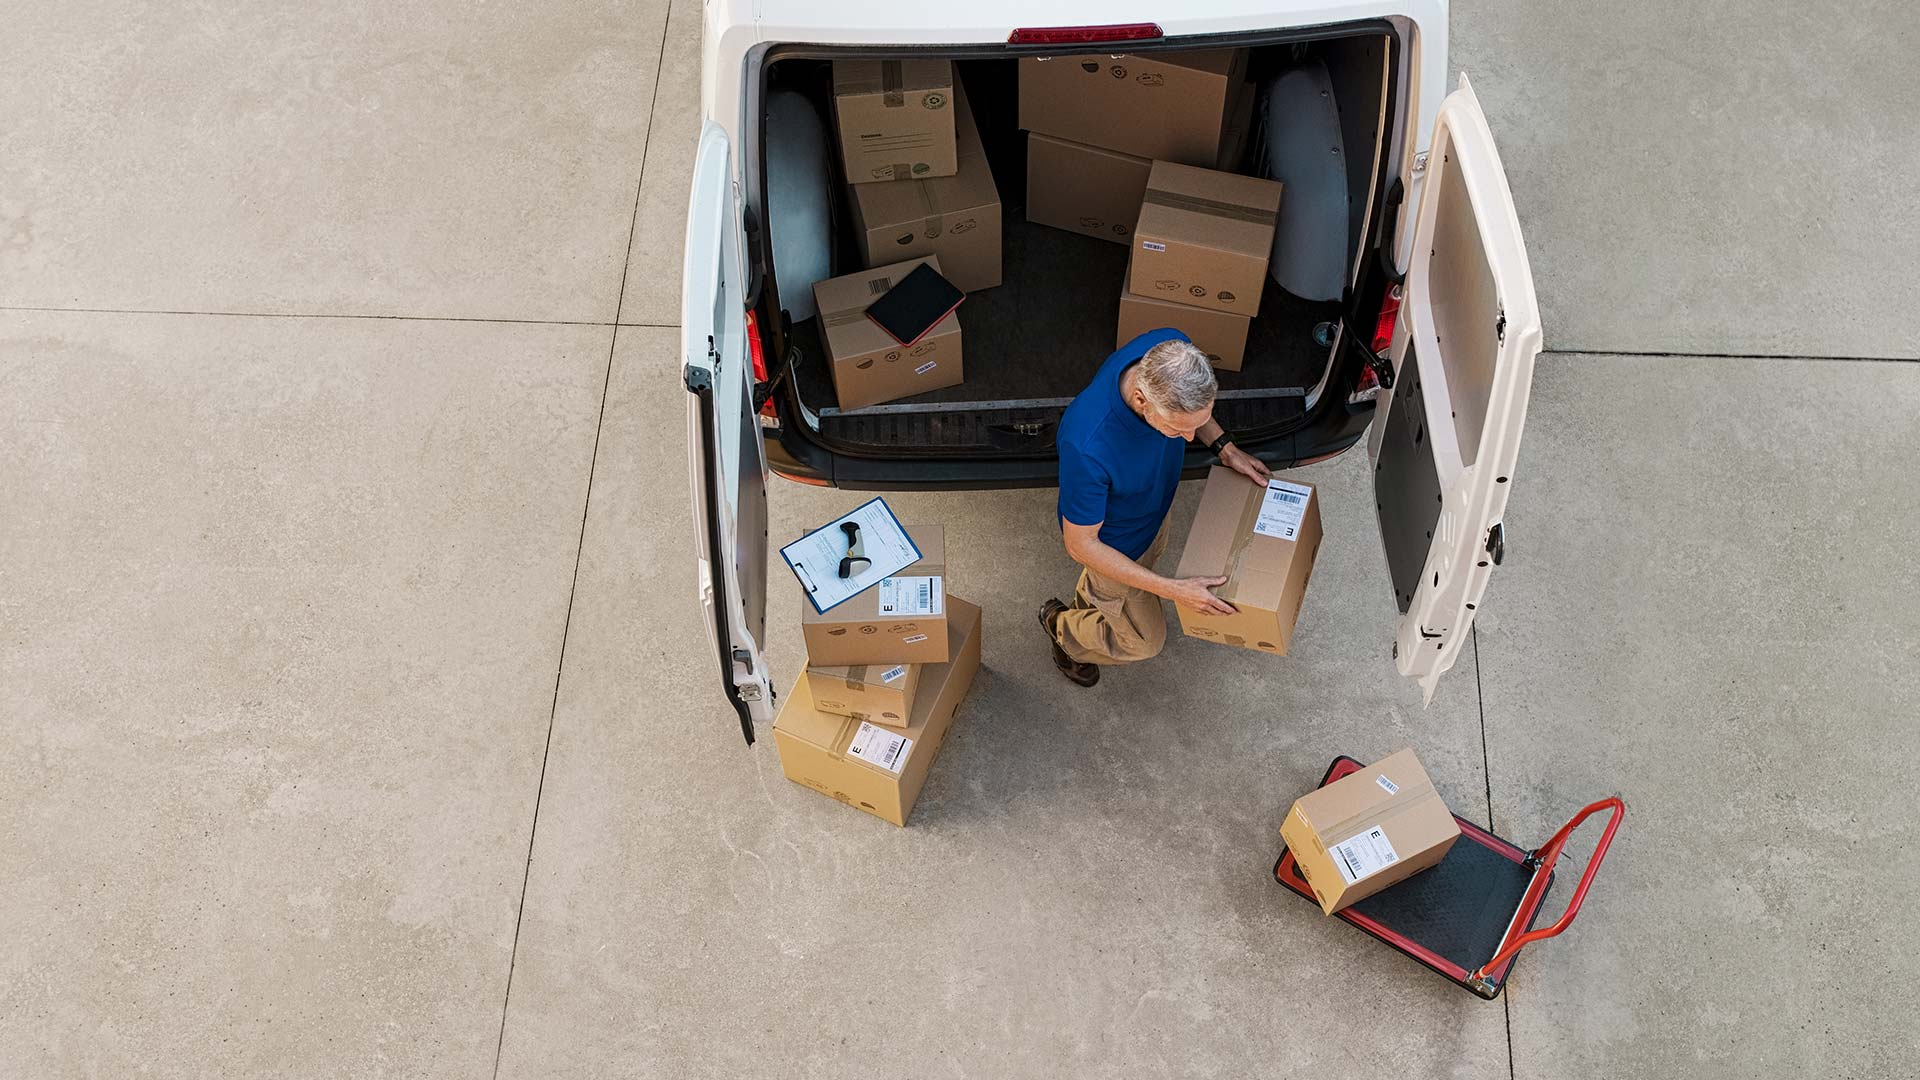 Services - ASK Sameday Couriers Ltd